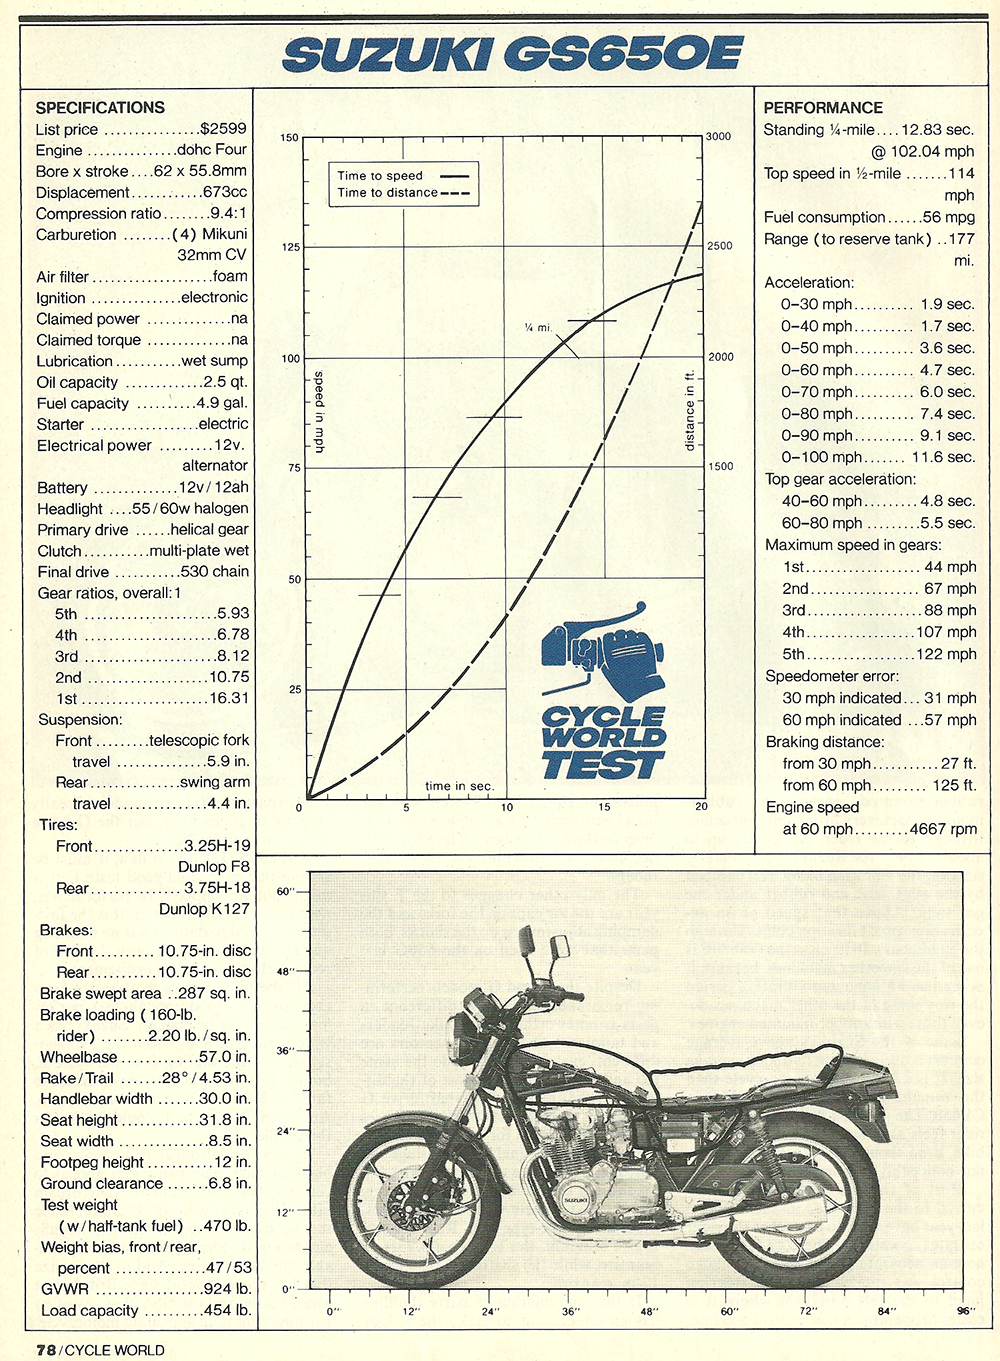 1982 Suzuki GS650E road test 05.jpg